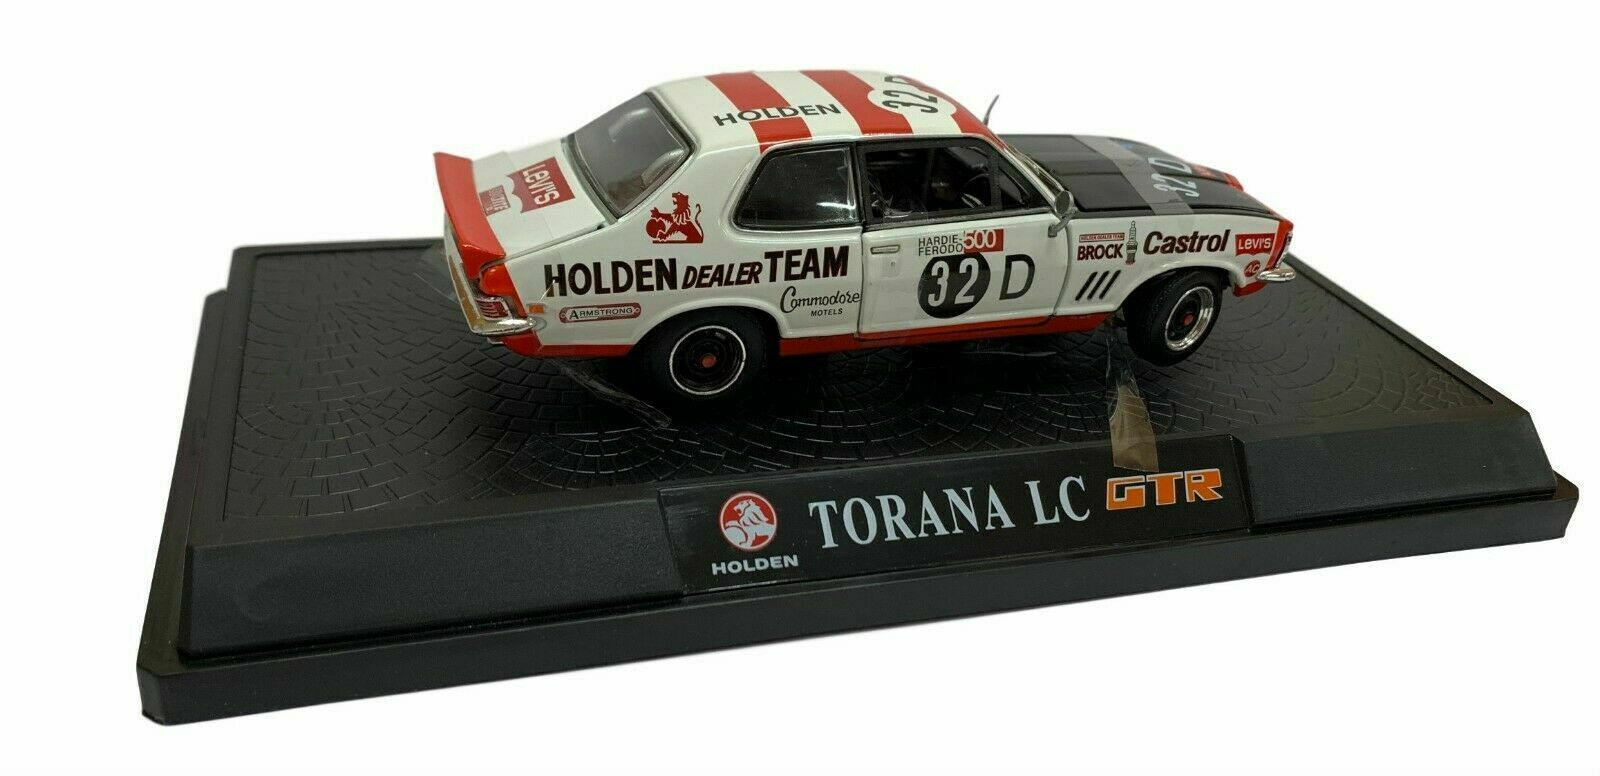 NEW OZLEGENDS Holden Torana LC GTR XU1 Diecast Model Car 1 32 Brock 32D Racing